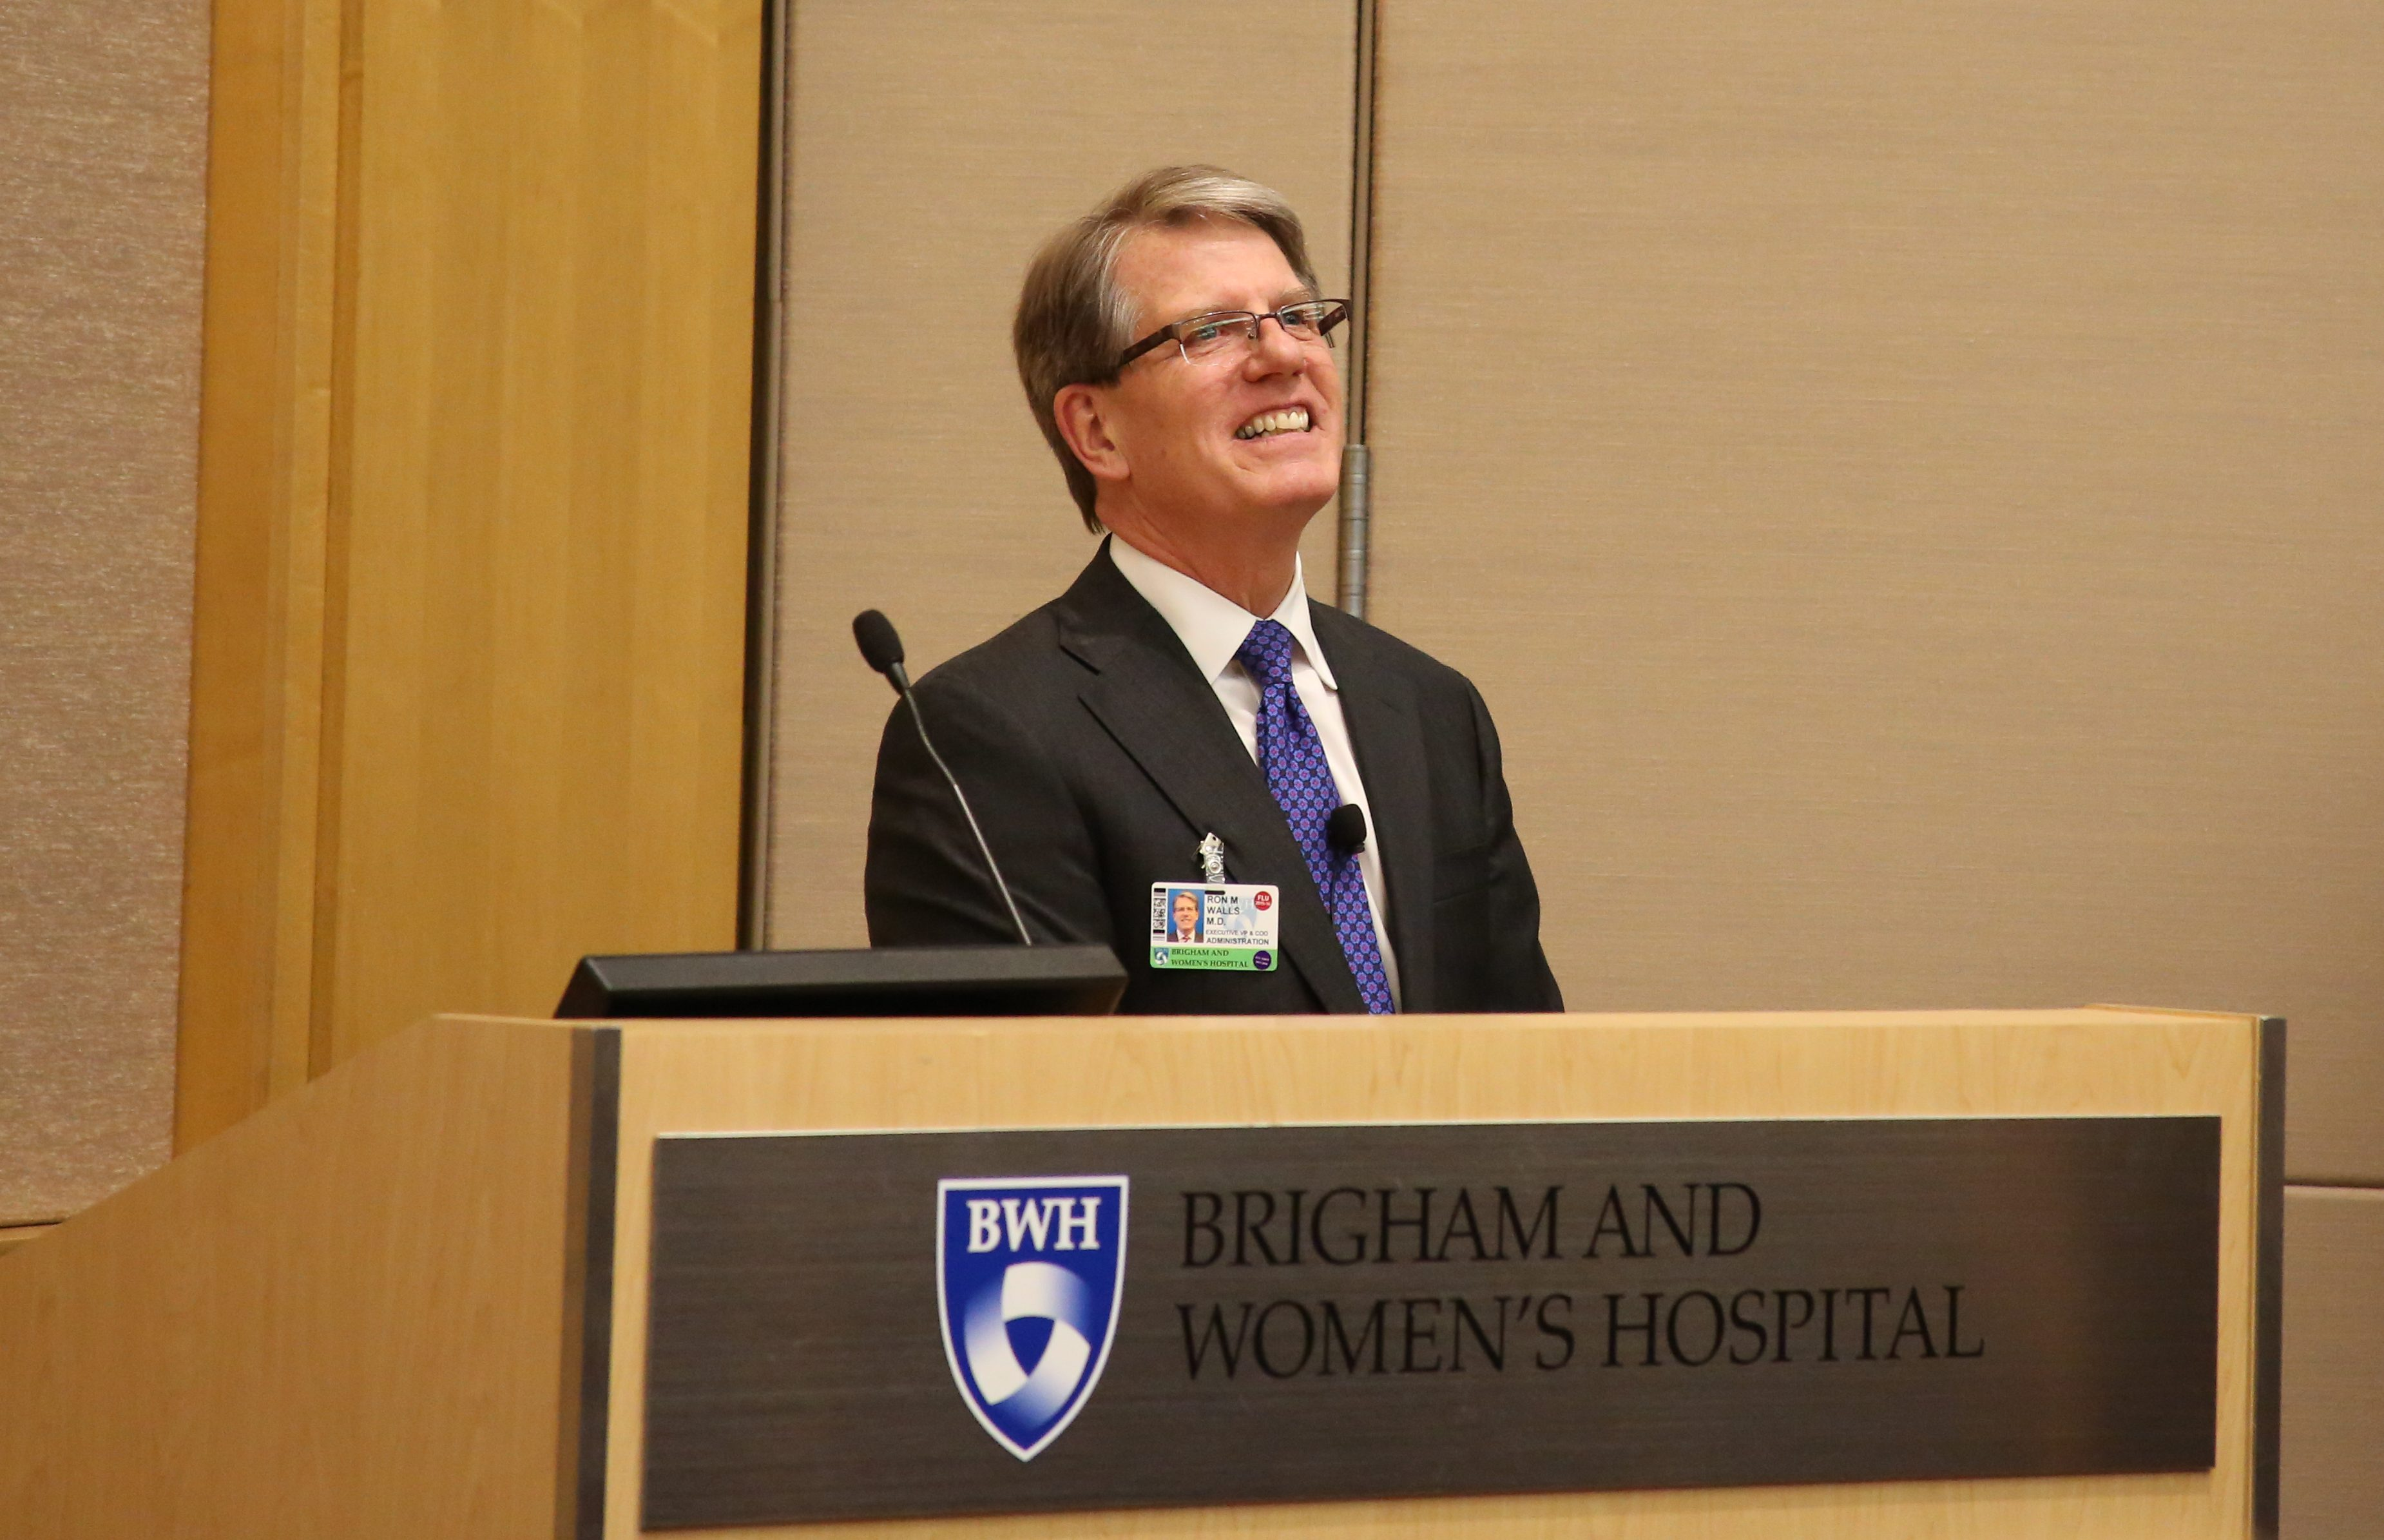 Ron Walls discusses the role patient safety plays in the Brigham's strategic priorities.